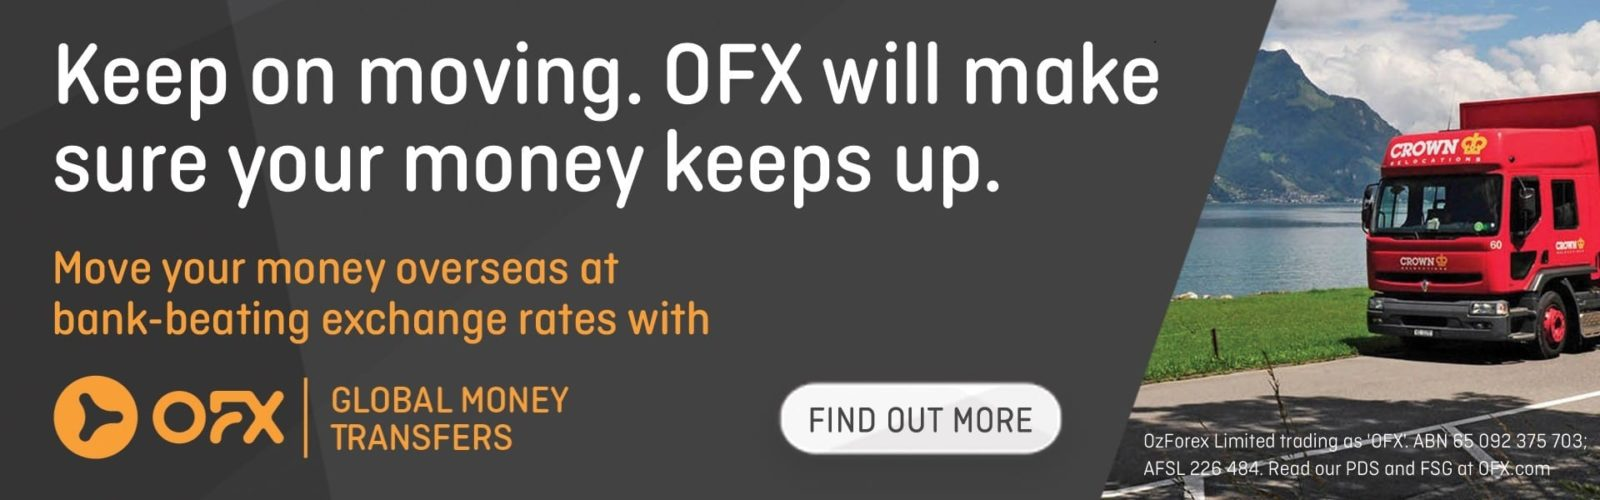 OFX will make sure your money keeps up!